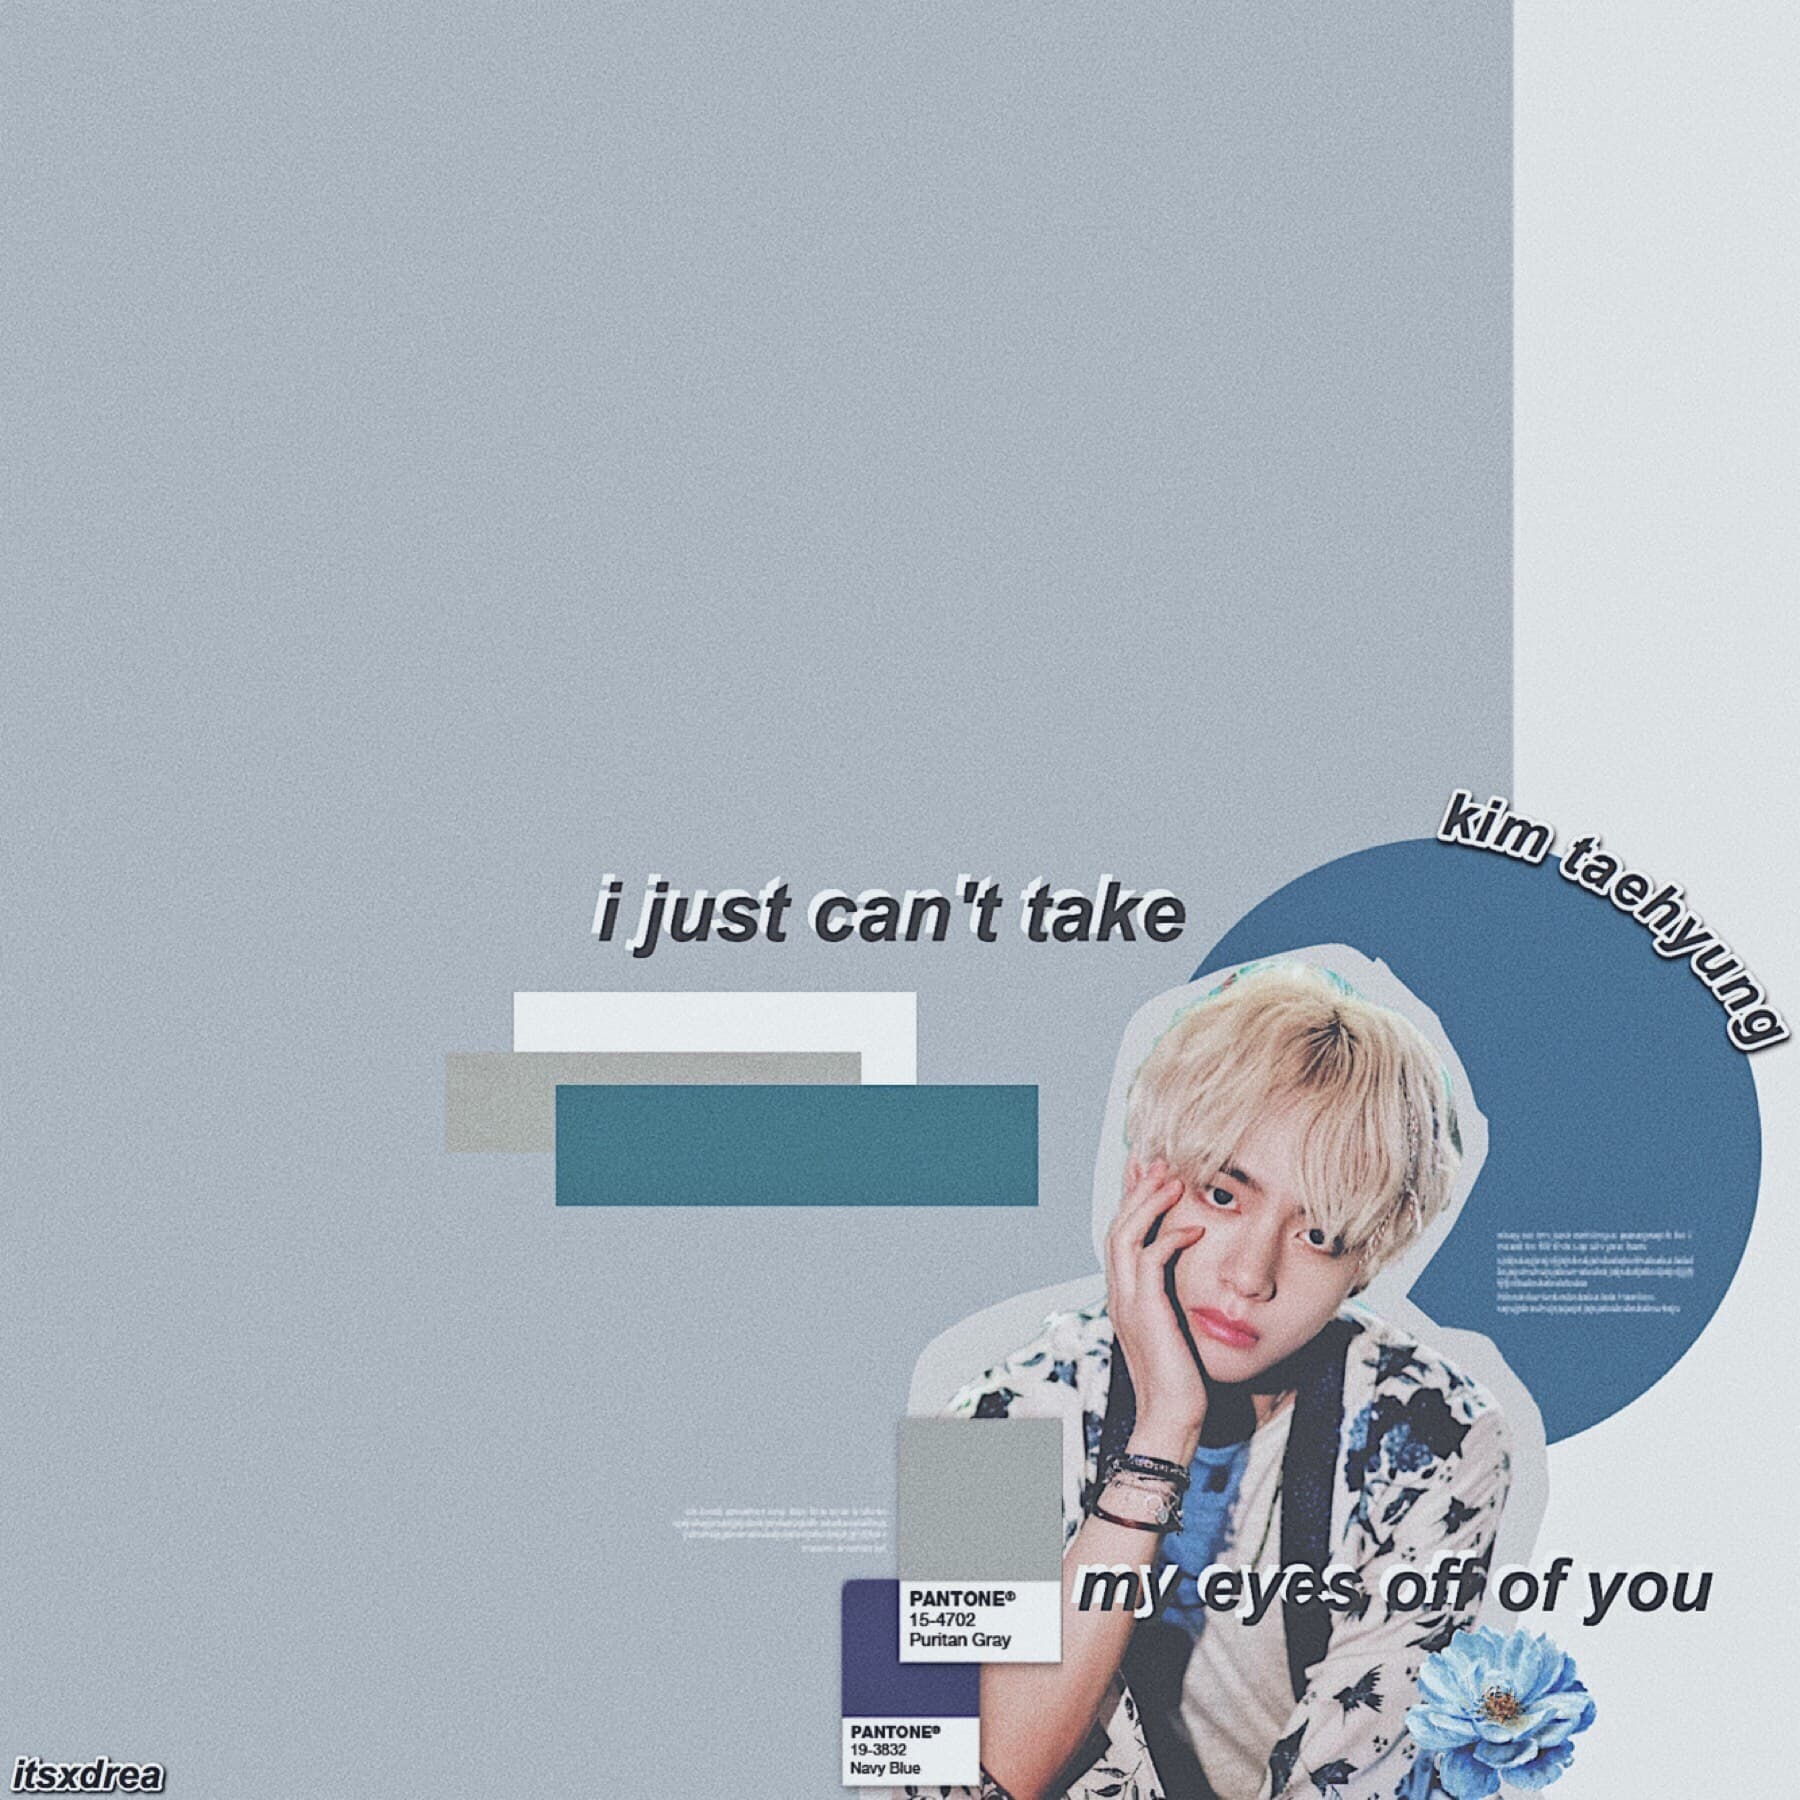 🦋   for @ex0tic-edits games    here's an edit of my bby :,) bts' new song by tae nd hoseok with zara larsson is honestly so good UGH 😭 i loved everything abt it, specially tae skajdhajak